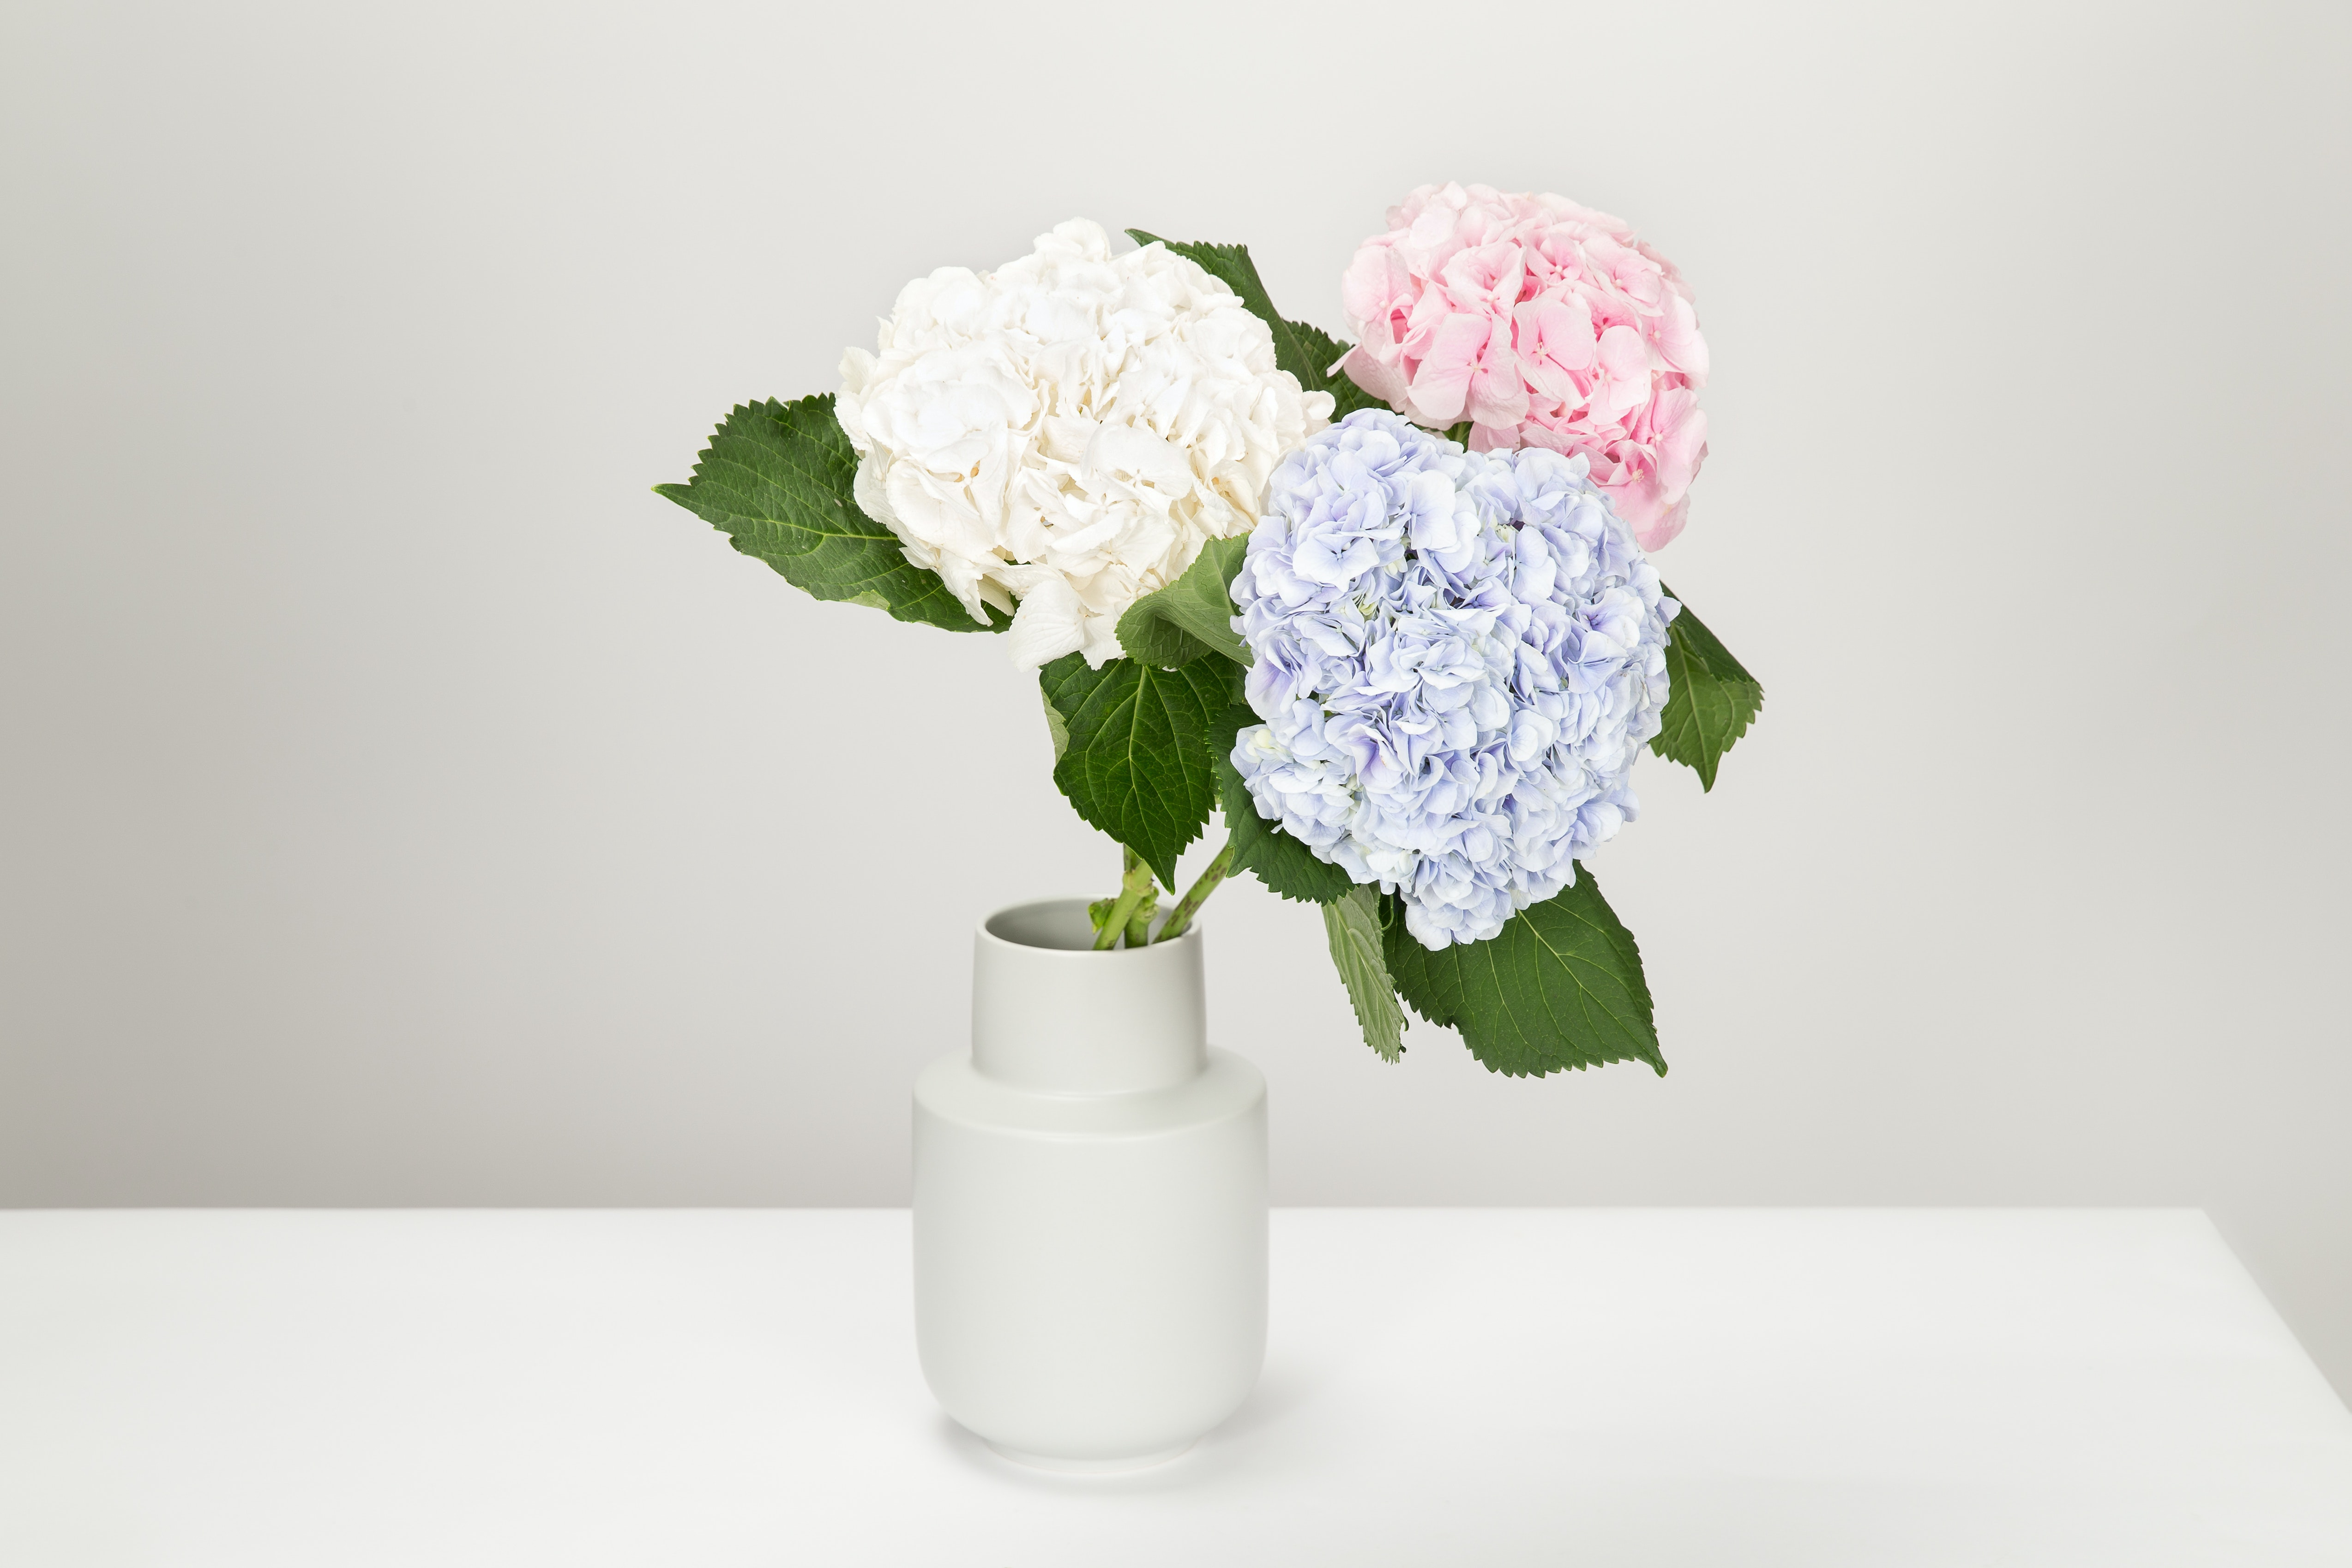 Three White Blue And Pink Petaled Flowers In White Vase Free